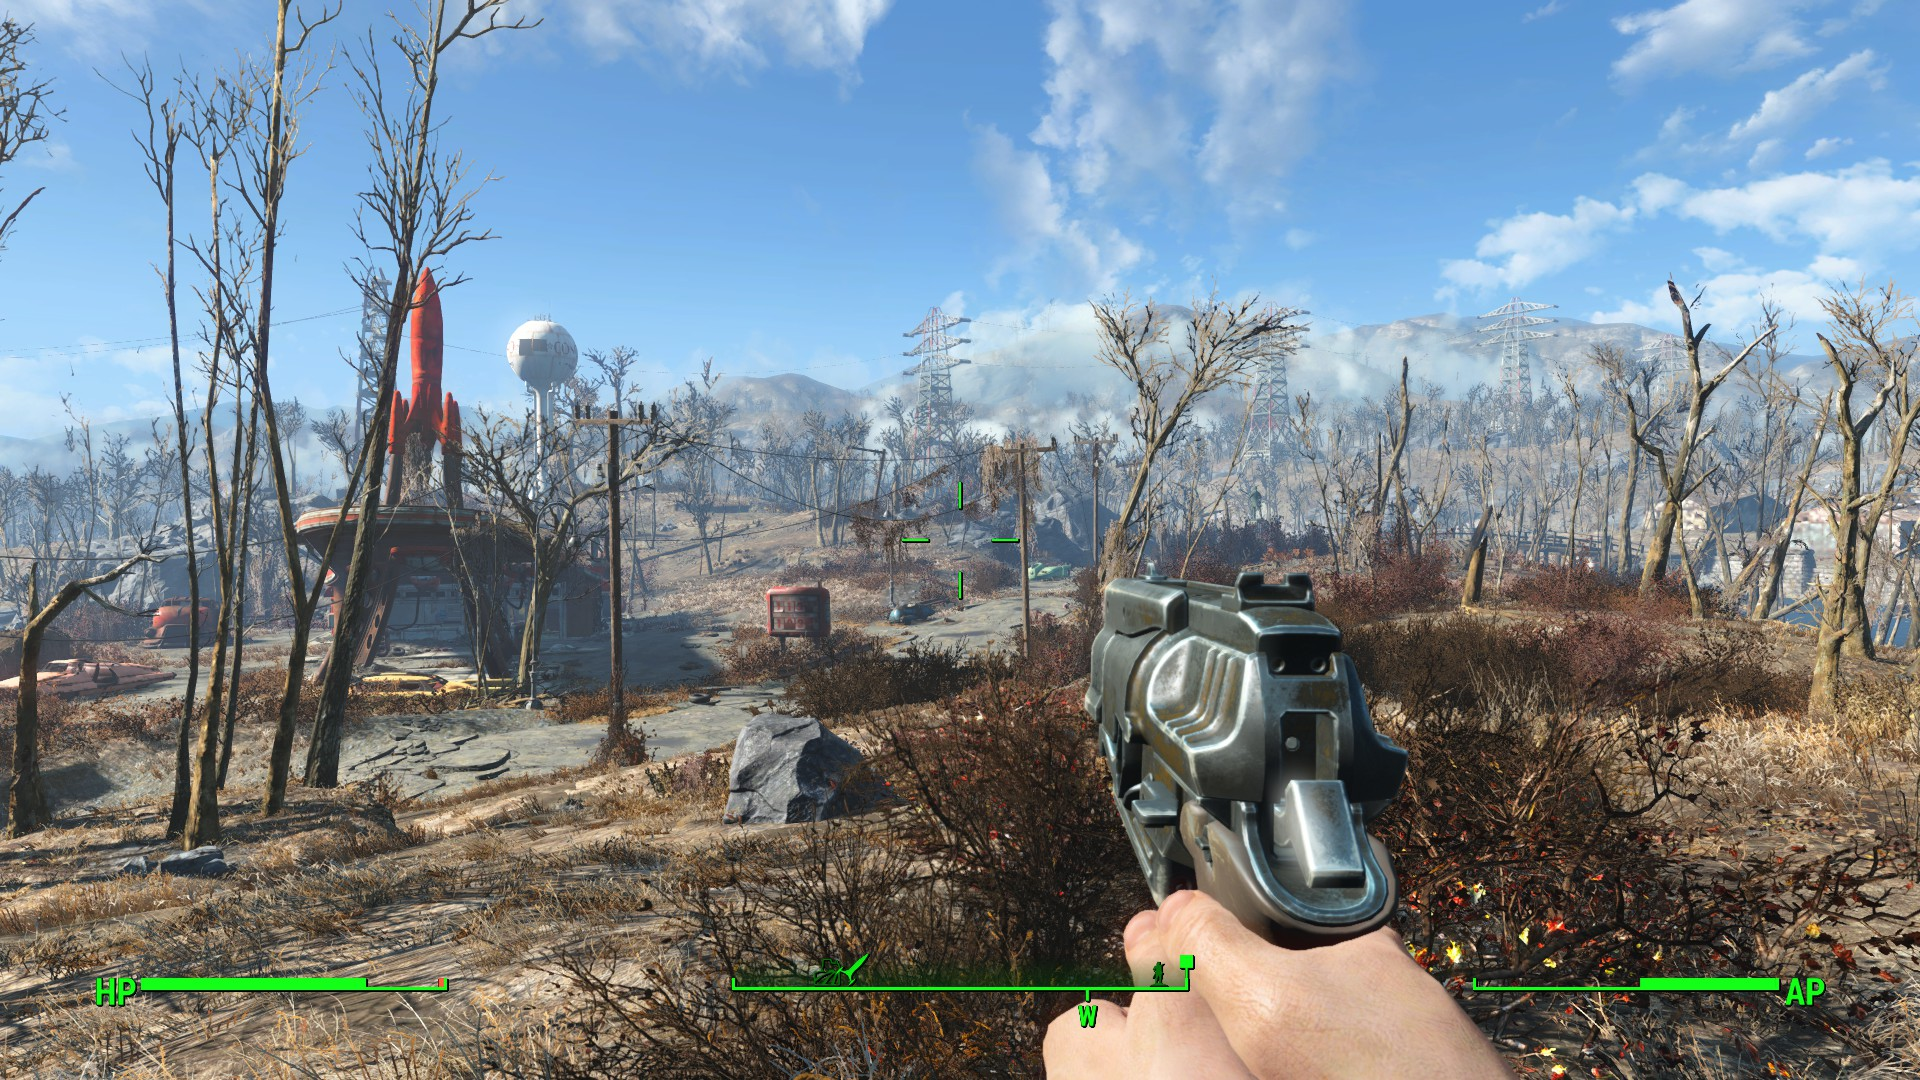 13 Fallout 4 PC Gameplay Screenshots At Ultra Setting Leaked